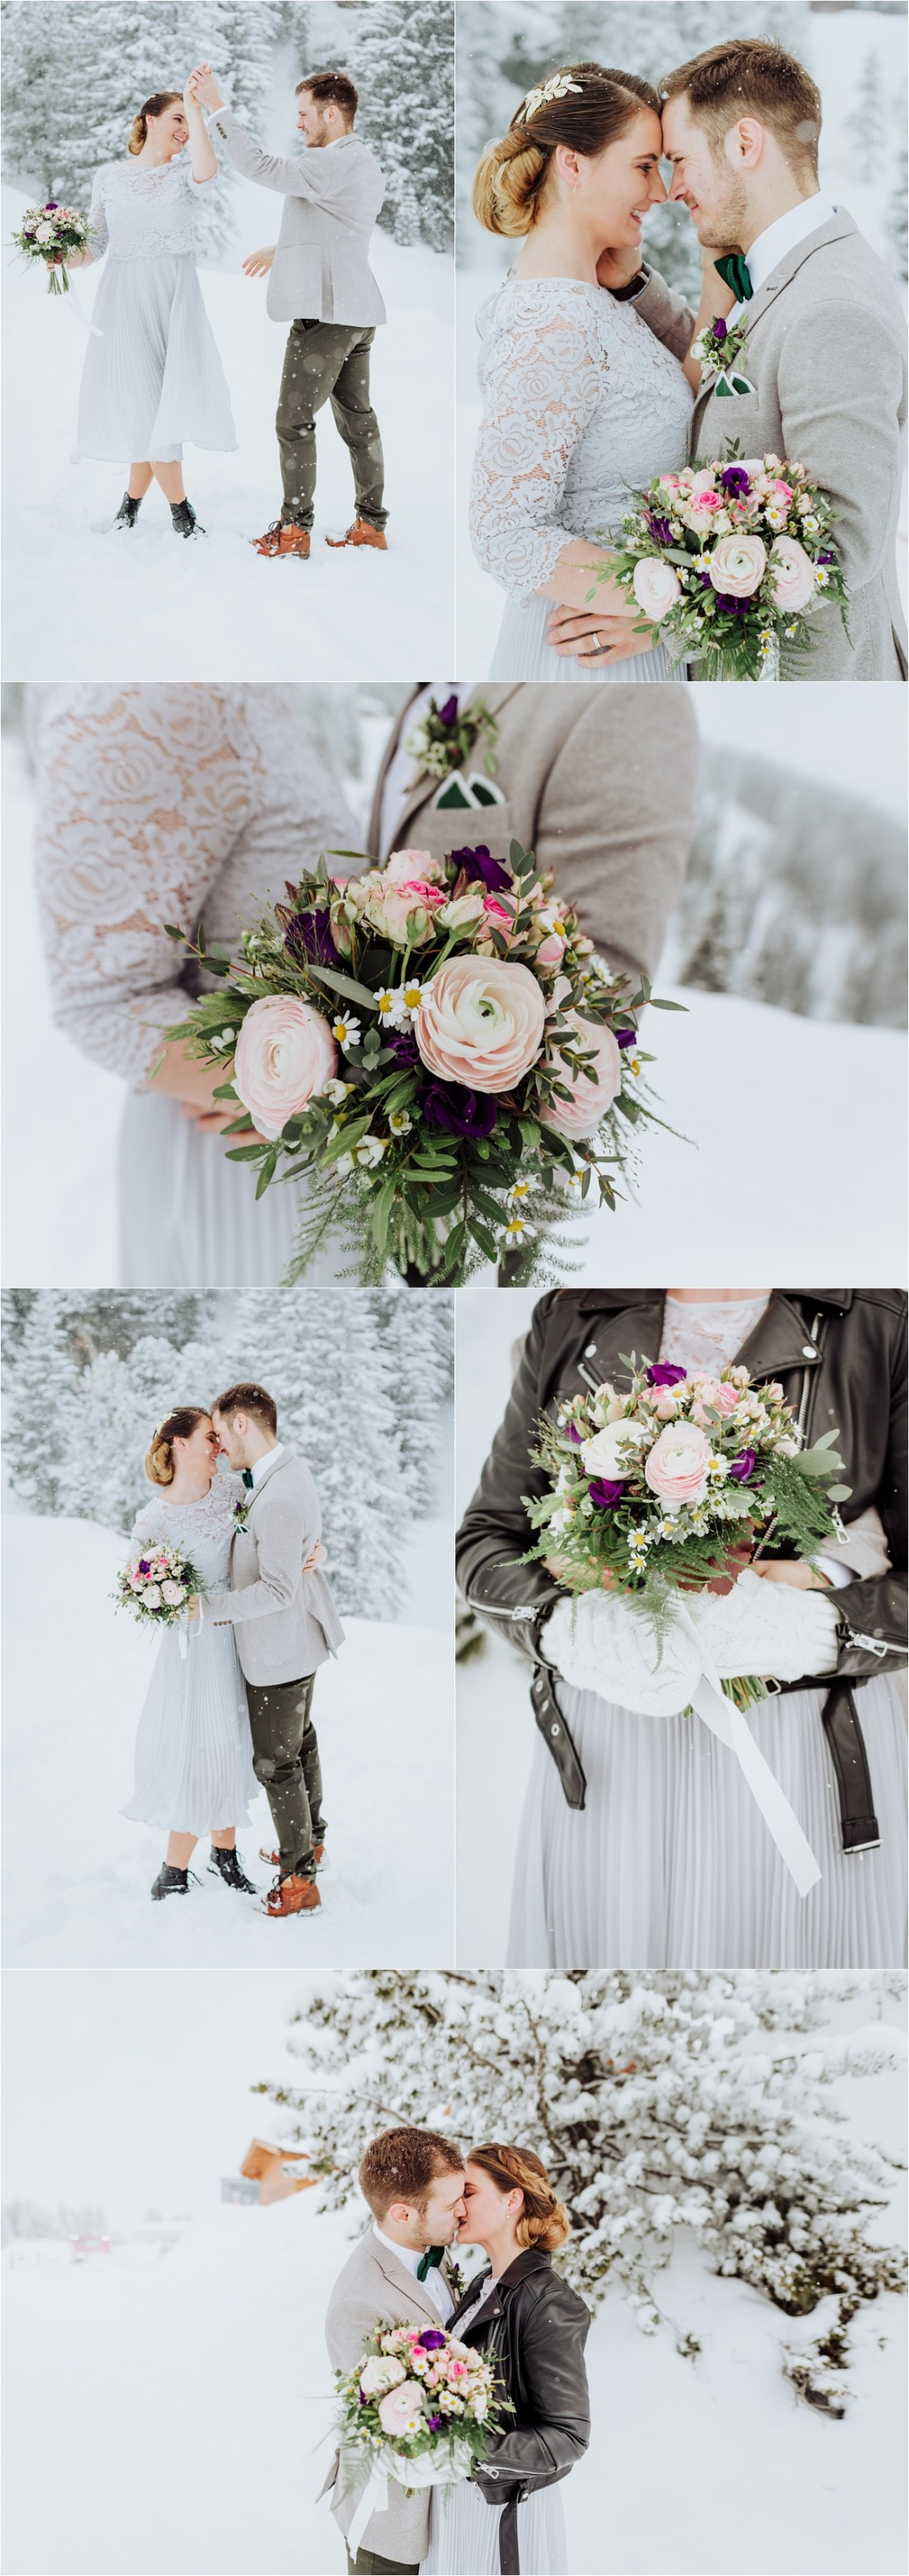 Bride & groom Nadja & Frederik enjoy the snow on the Penken in Mayrhofen Austria by Wild Connections Photography